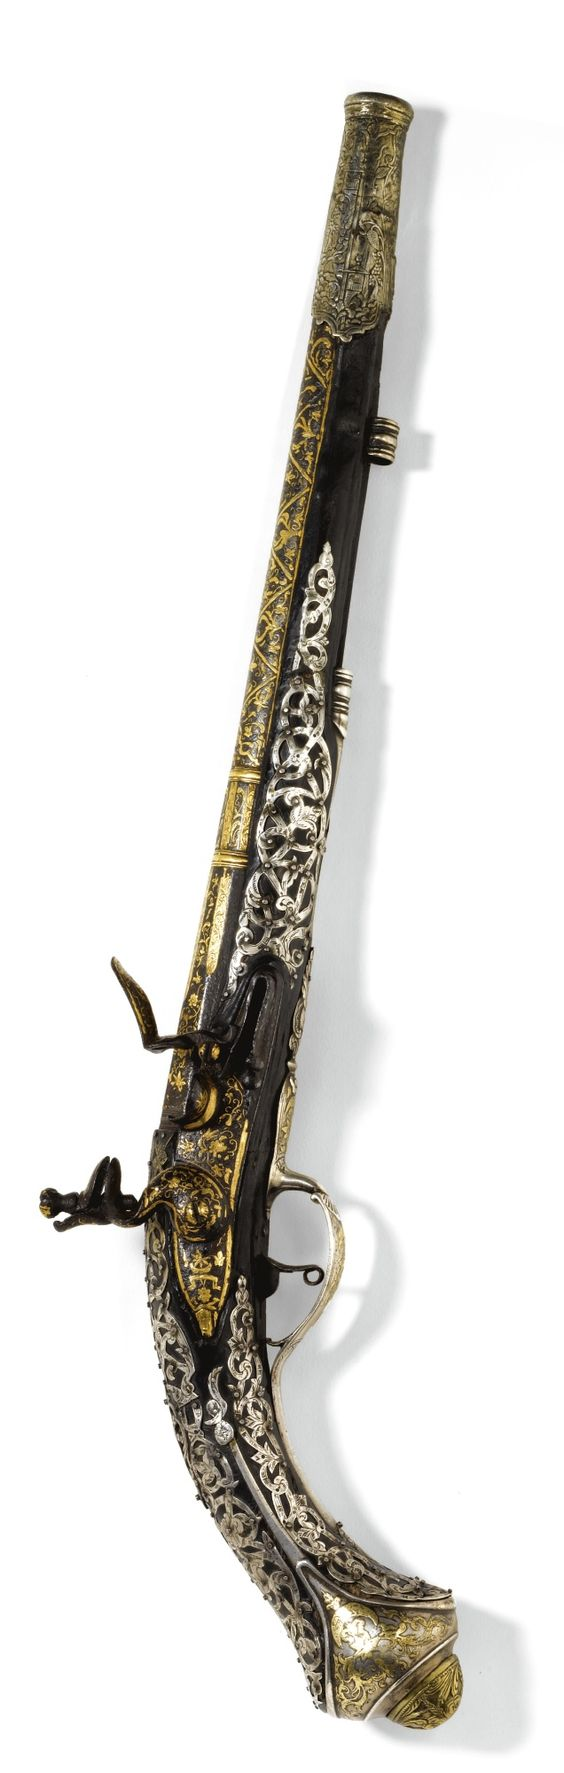 An Ottoman silver-mounted pistol with earlier gold-inlaid barrel, Turkey, circa 1700